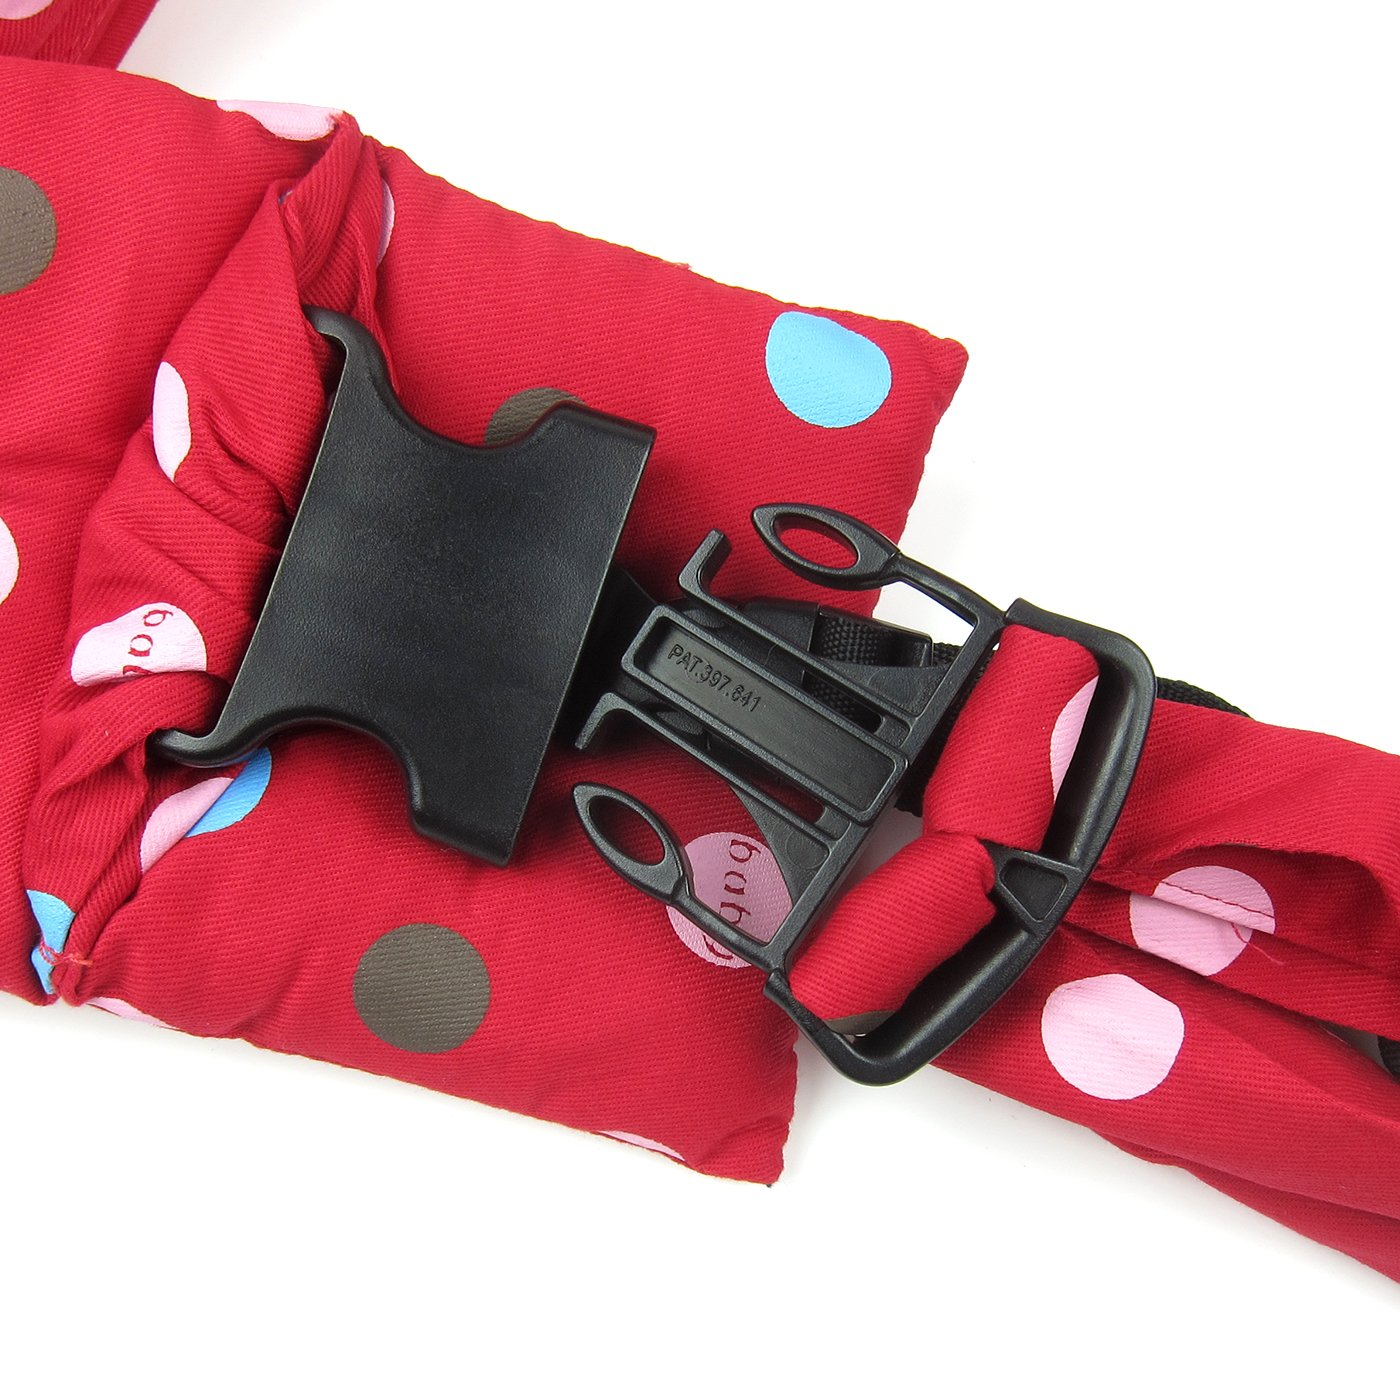 Alfie Pet by Petoga Couture - Hollis Pet Sling Carrier with Adjustable Strap - Color: Red by Alfie (Image #6)